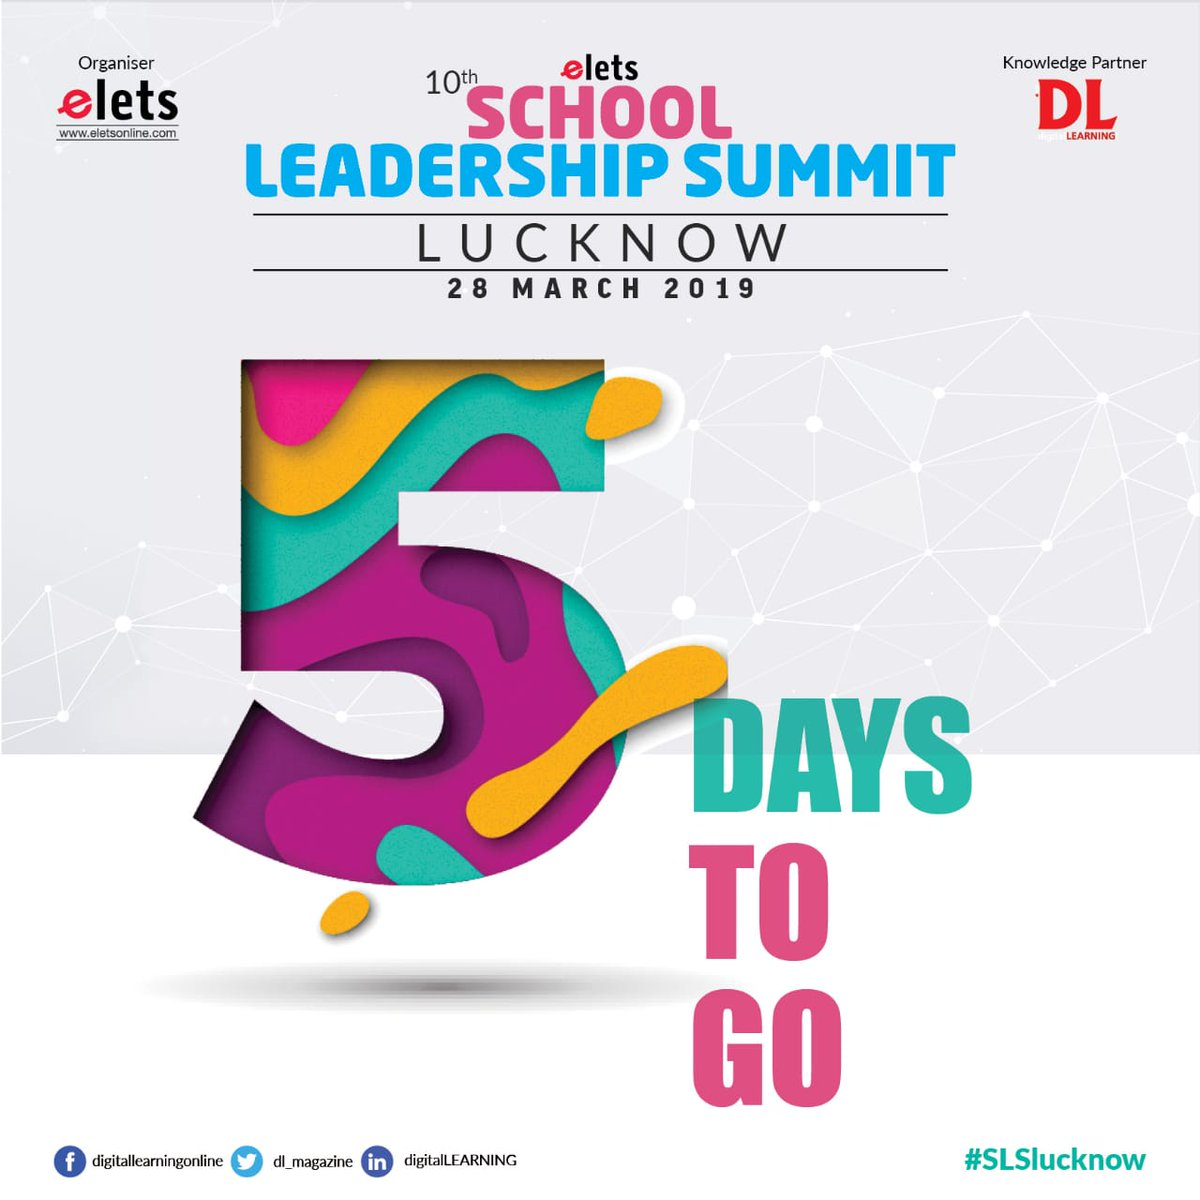 test Twitter Media - 5 DAYS TO GO!!!  Be a part of 10th School Leadership Summit to know about the latest and most innovative practices of School Education. The event is going to be organised on March 28, 2019.  #education #Schooleducation #SLSlucknow  @eletsonline @chandananand26 @dubeyashutosh79 https://t.co/M3TpdT1PAg